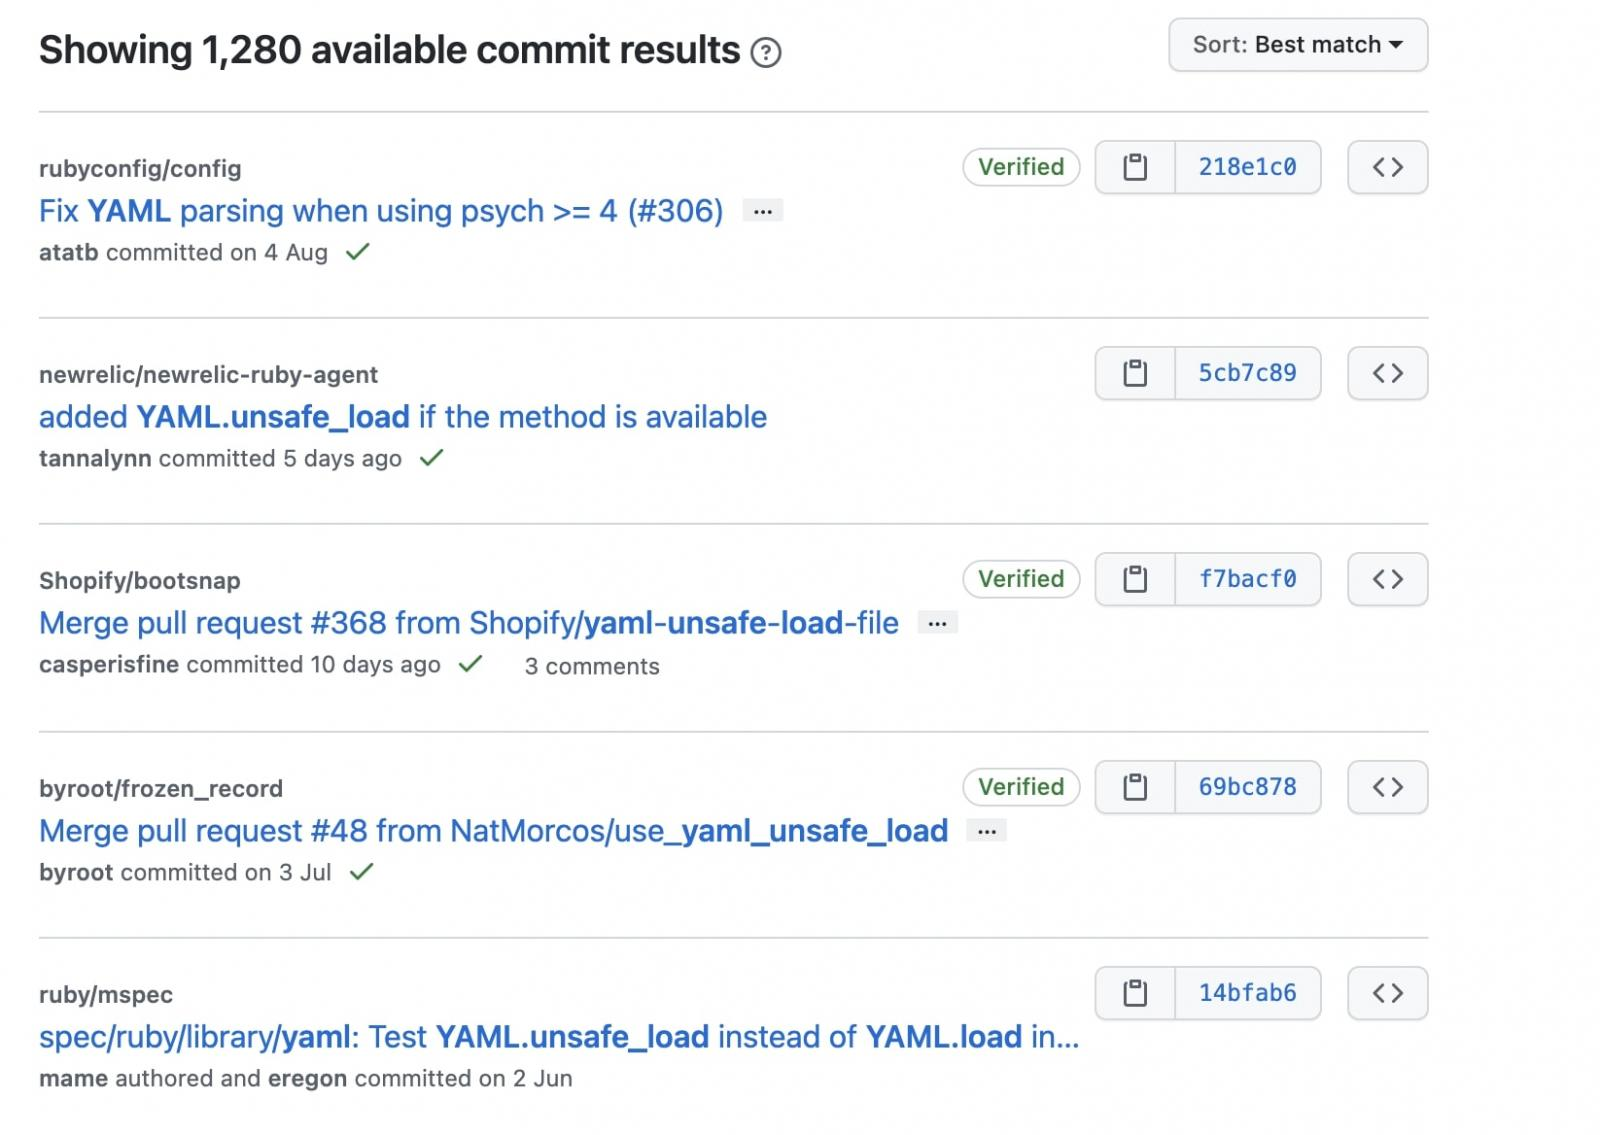 github results for applications using unsafe_load